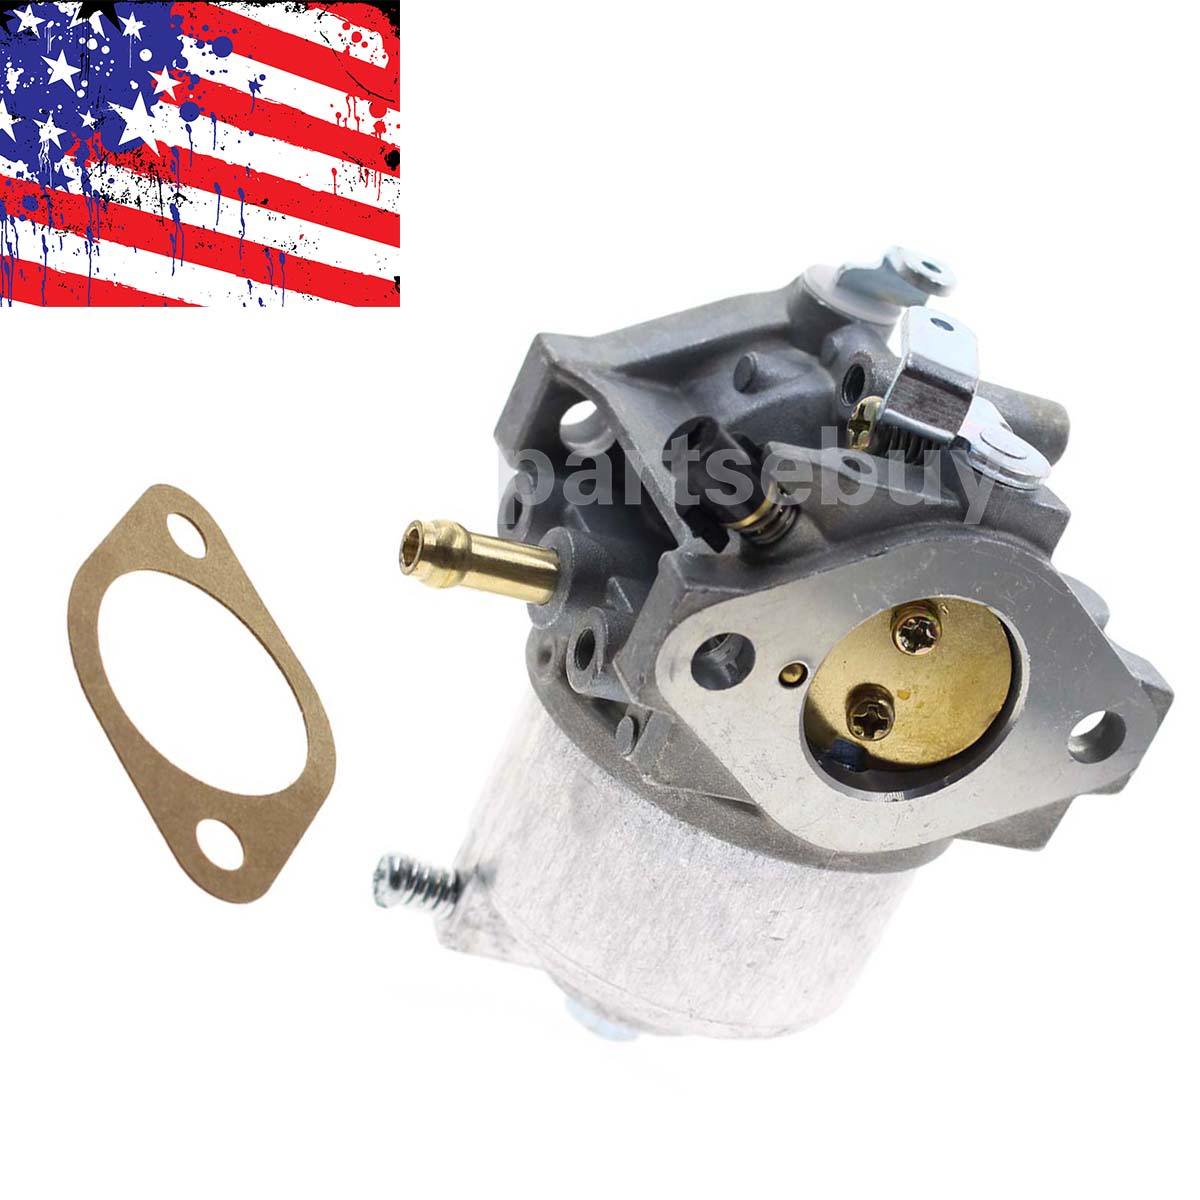 New Carburetor For John Deere285 320 Fd590v Kawasaki